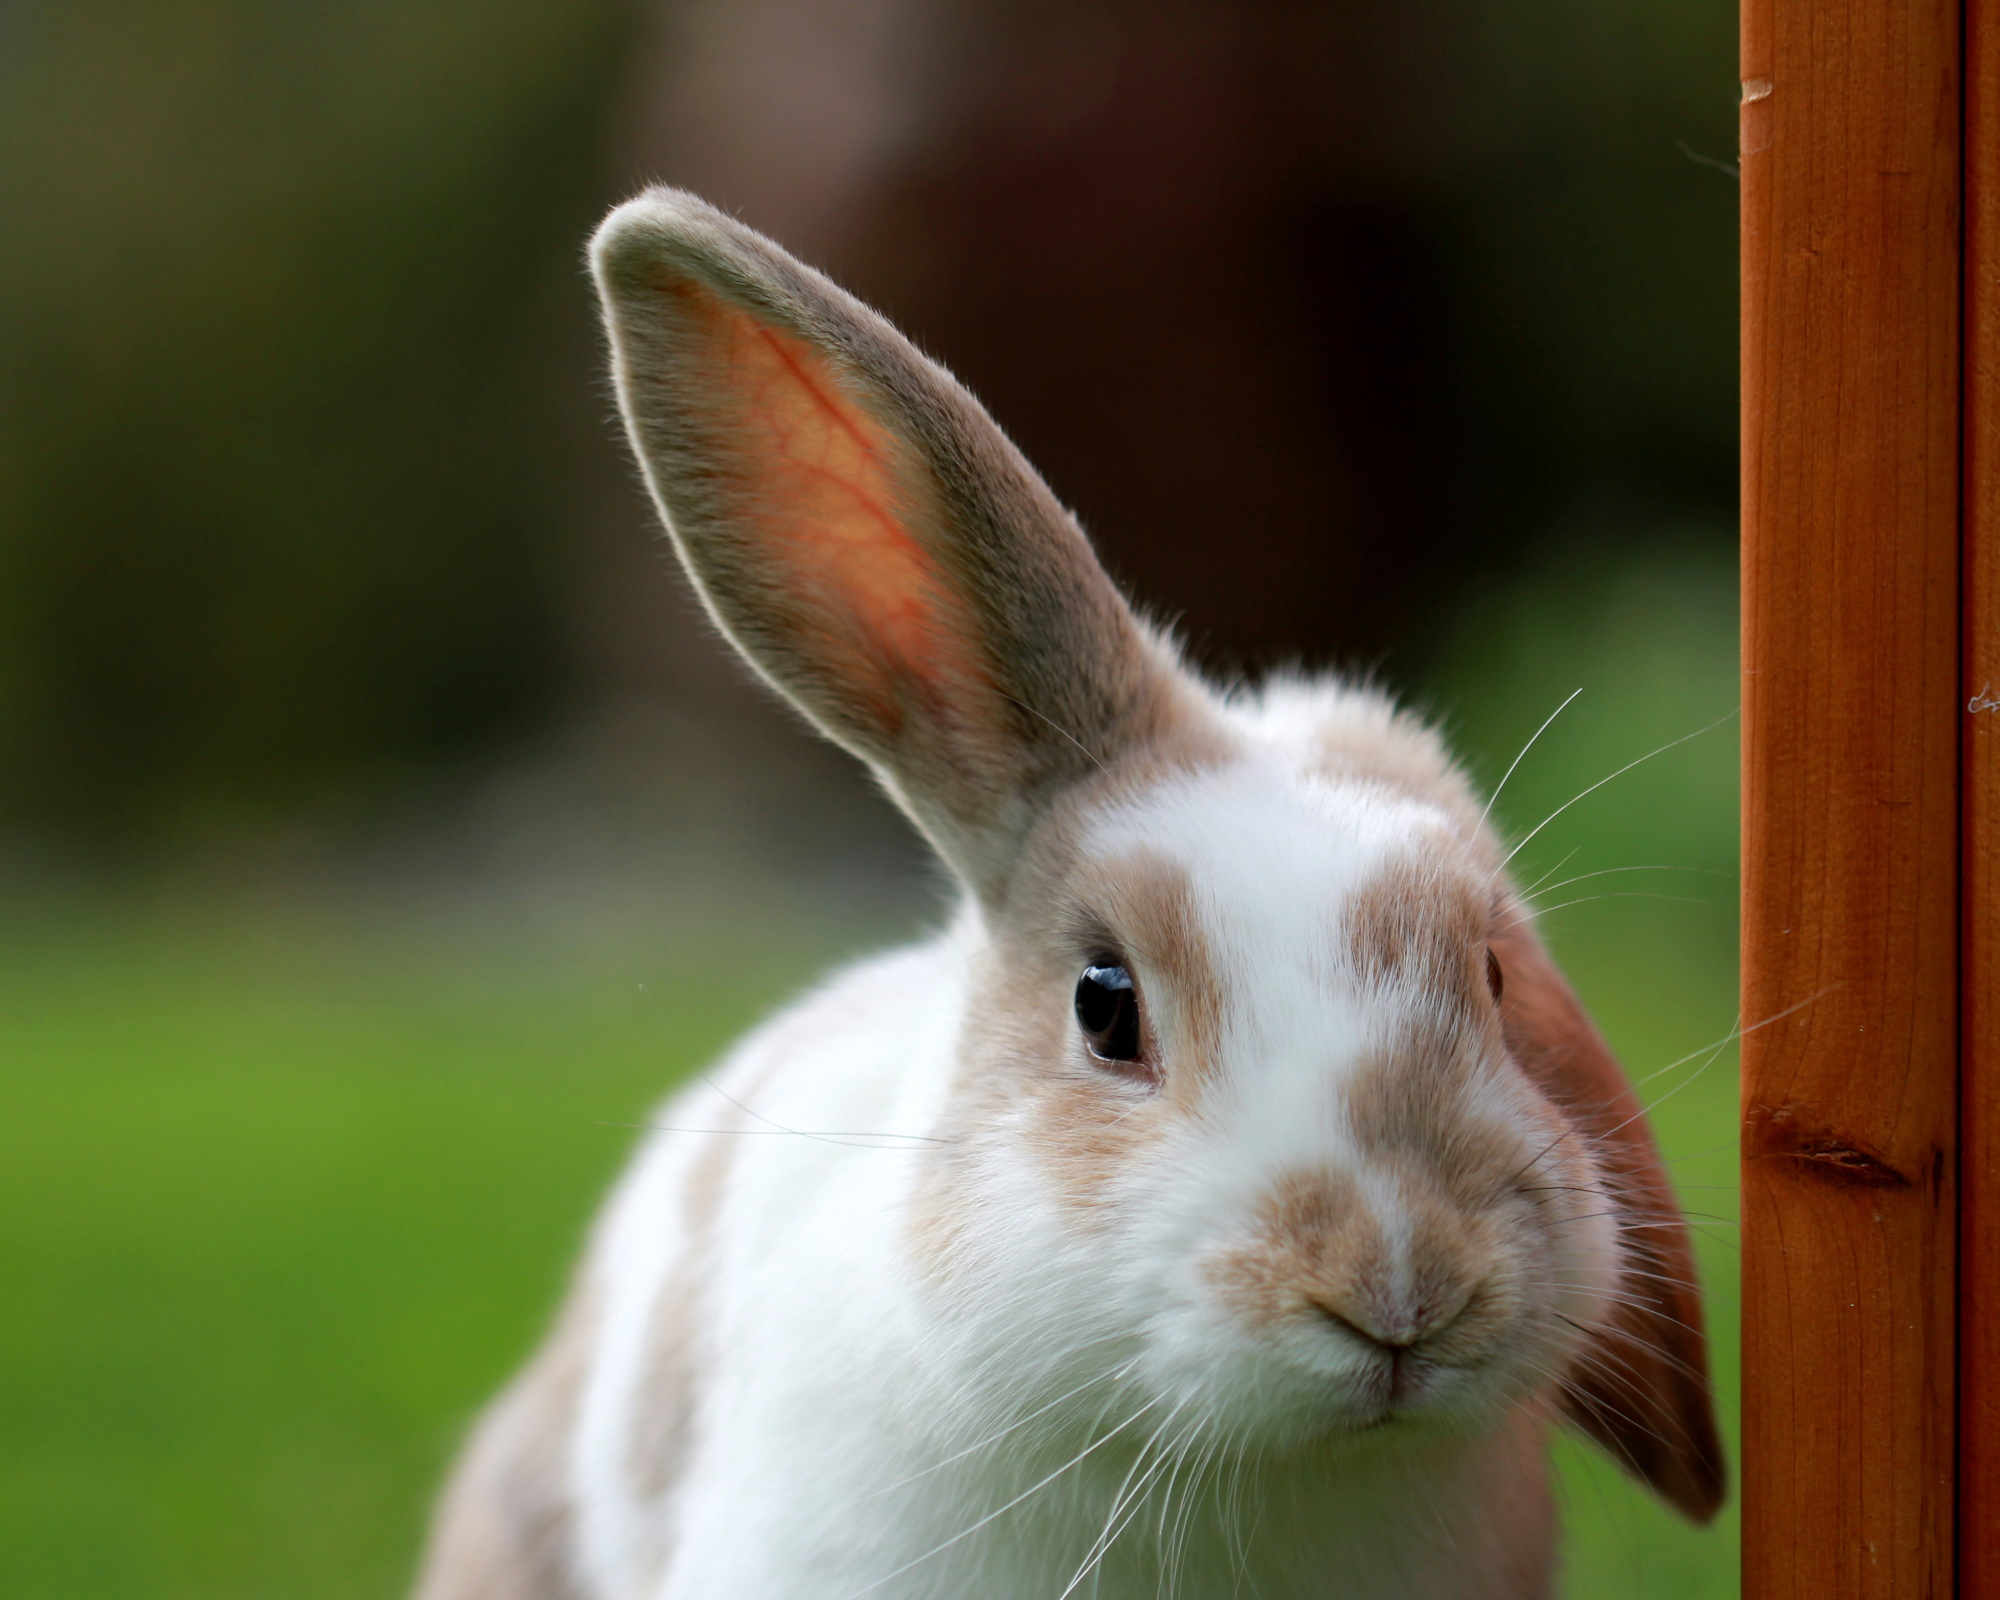 rabbit with one ear up and one ear down